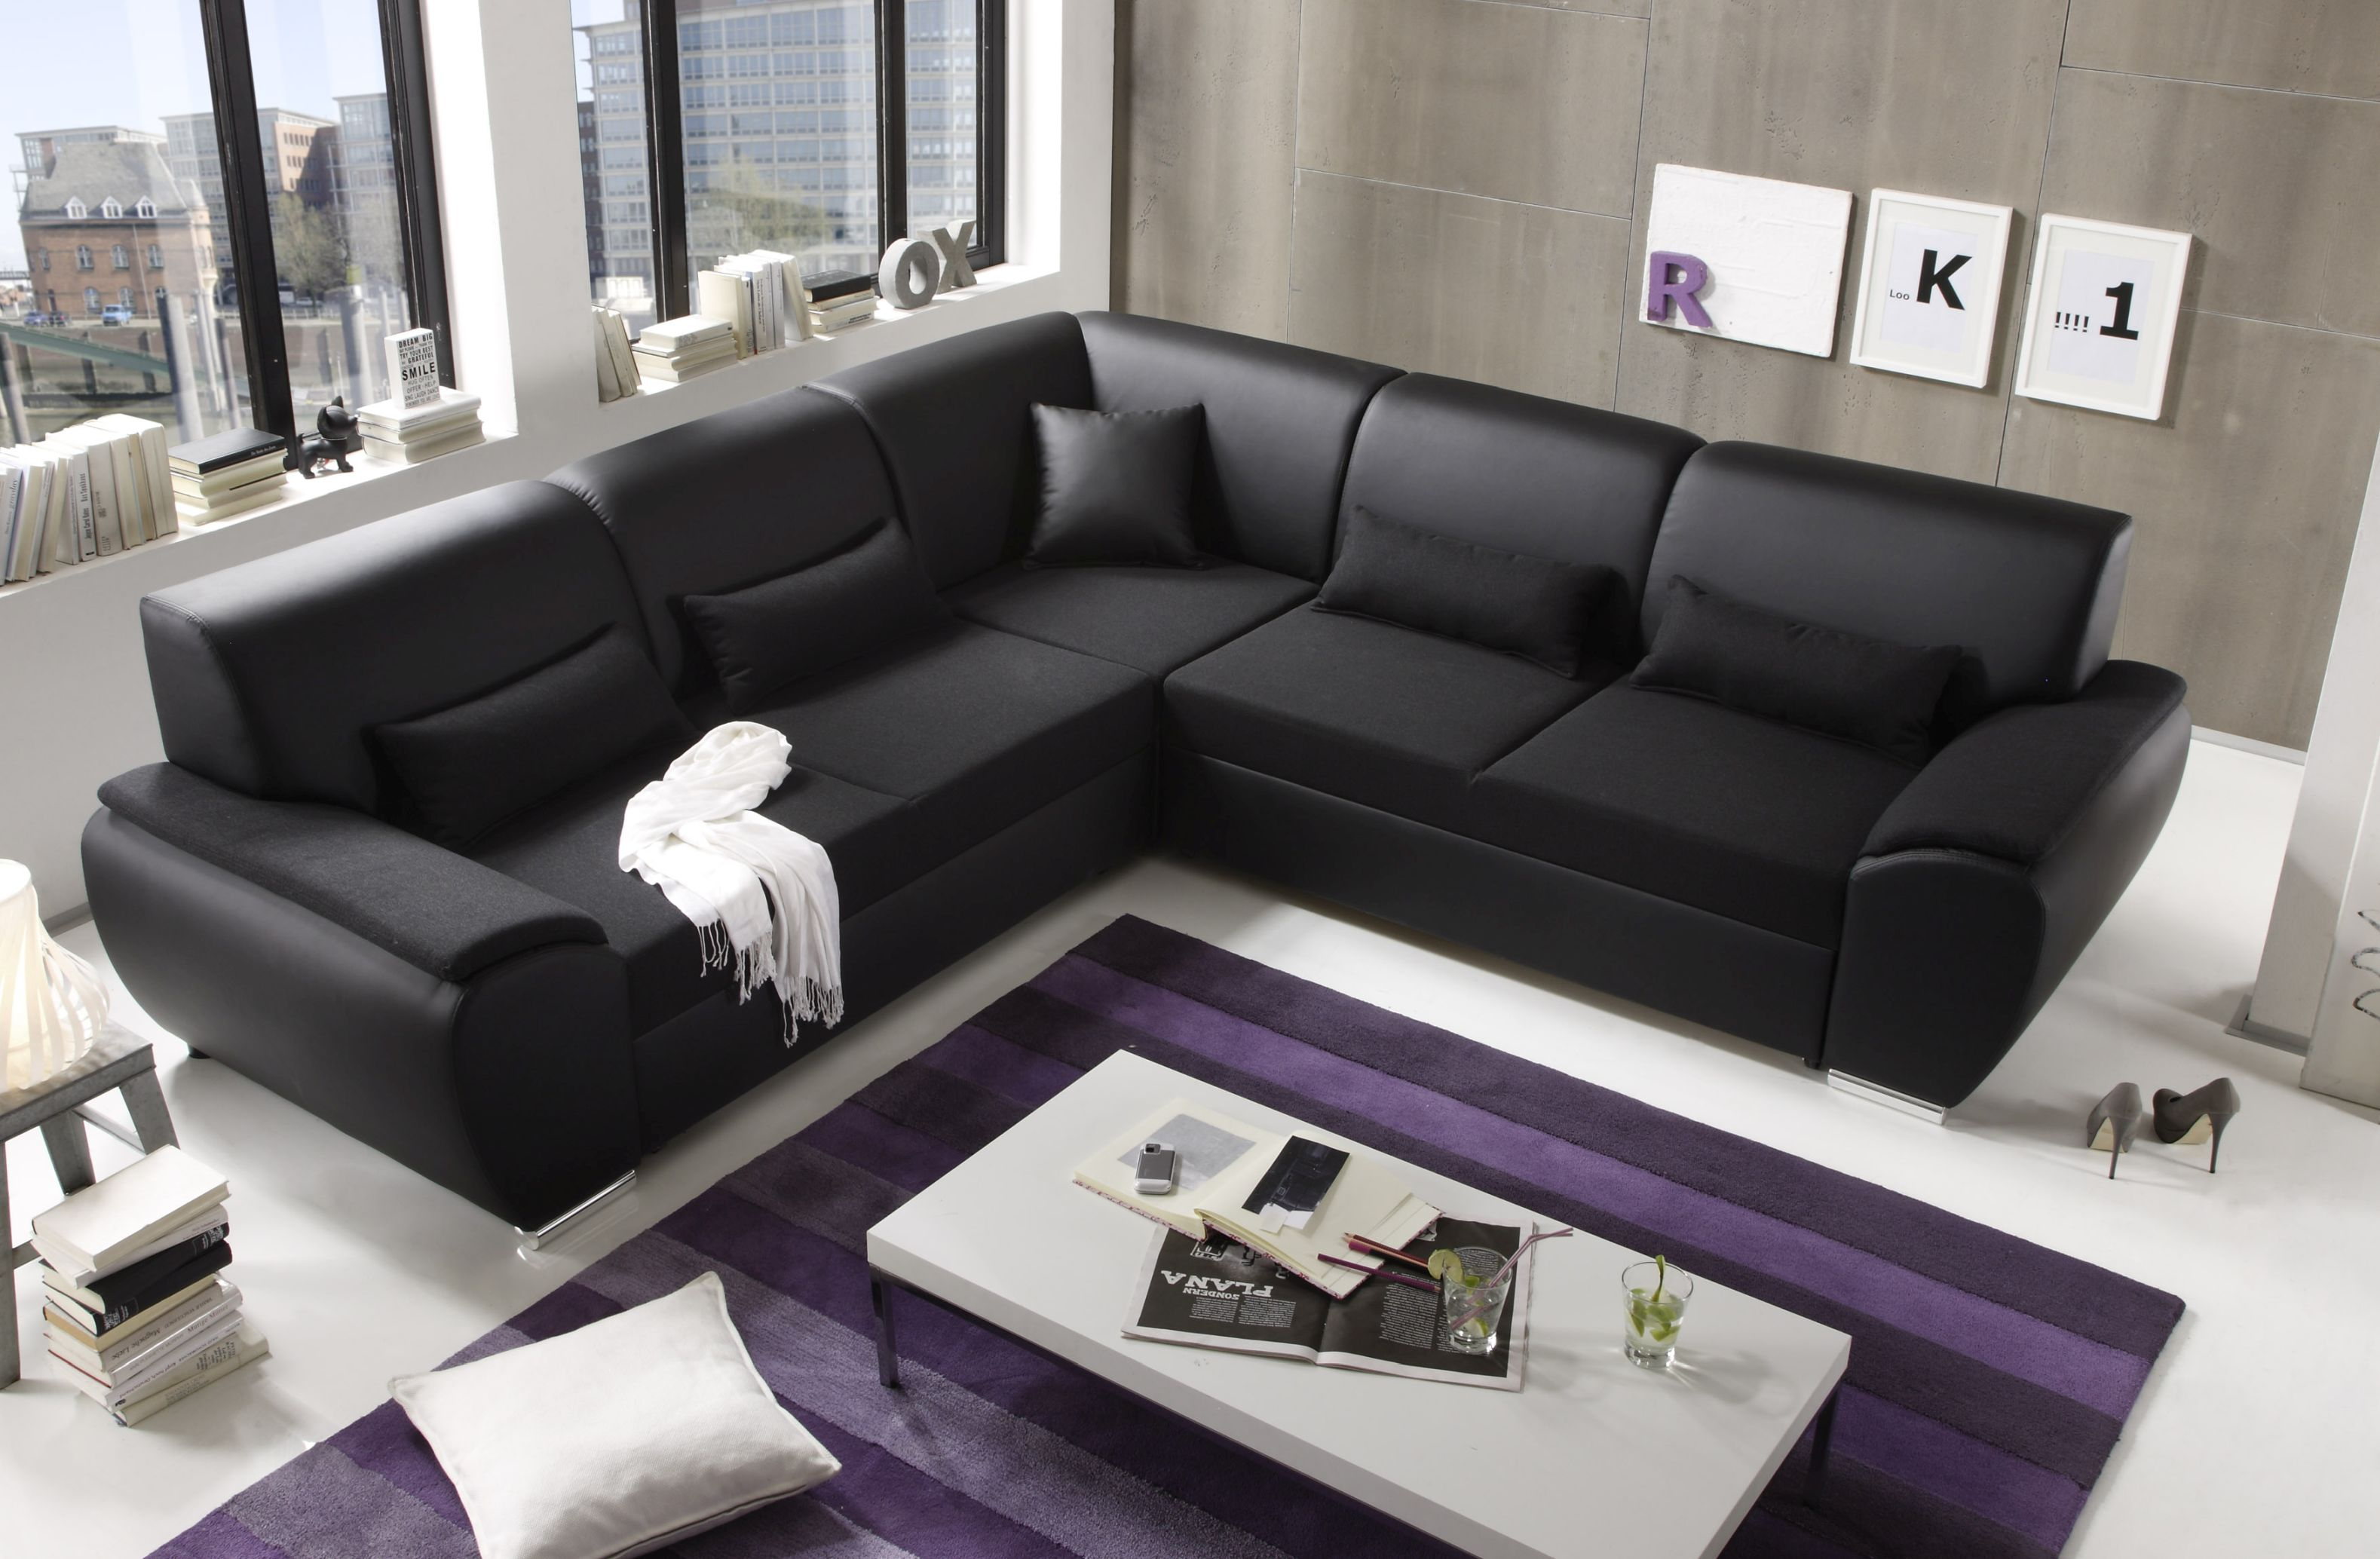 ecksofa kombiecke couch schlafcouch funktionssofa. Black Bedroom Furniture Sets. Home Design Ideas